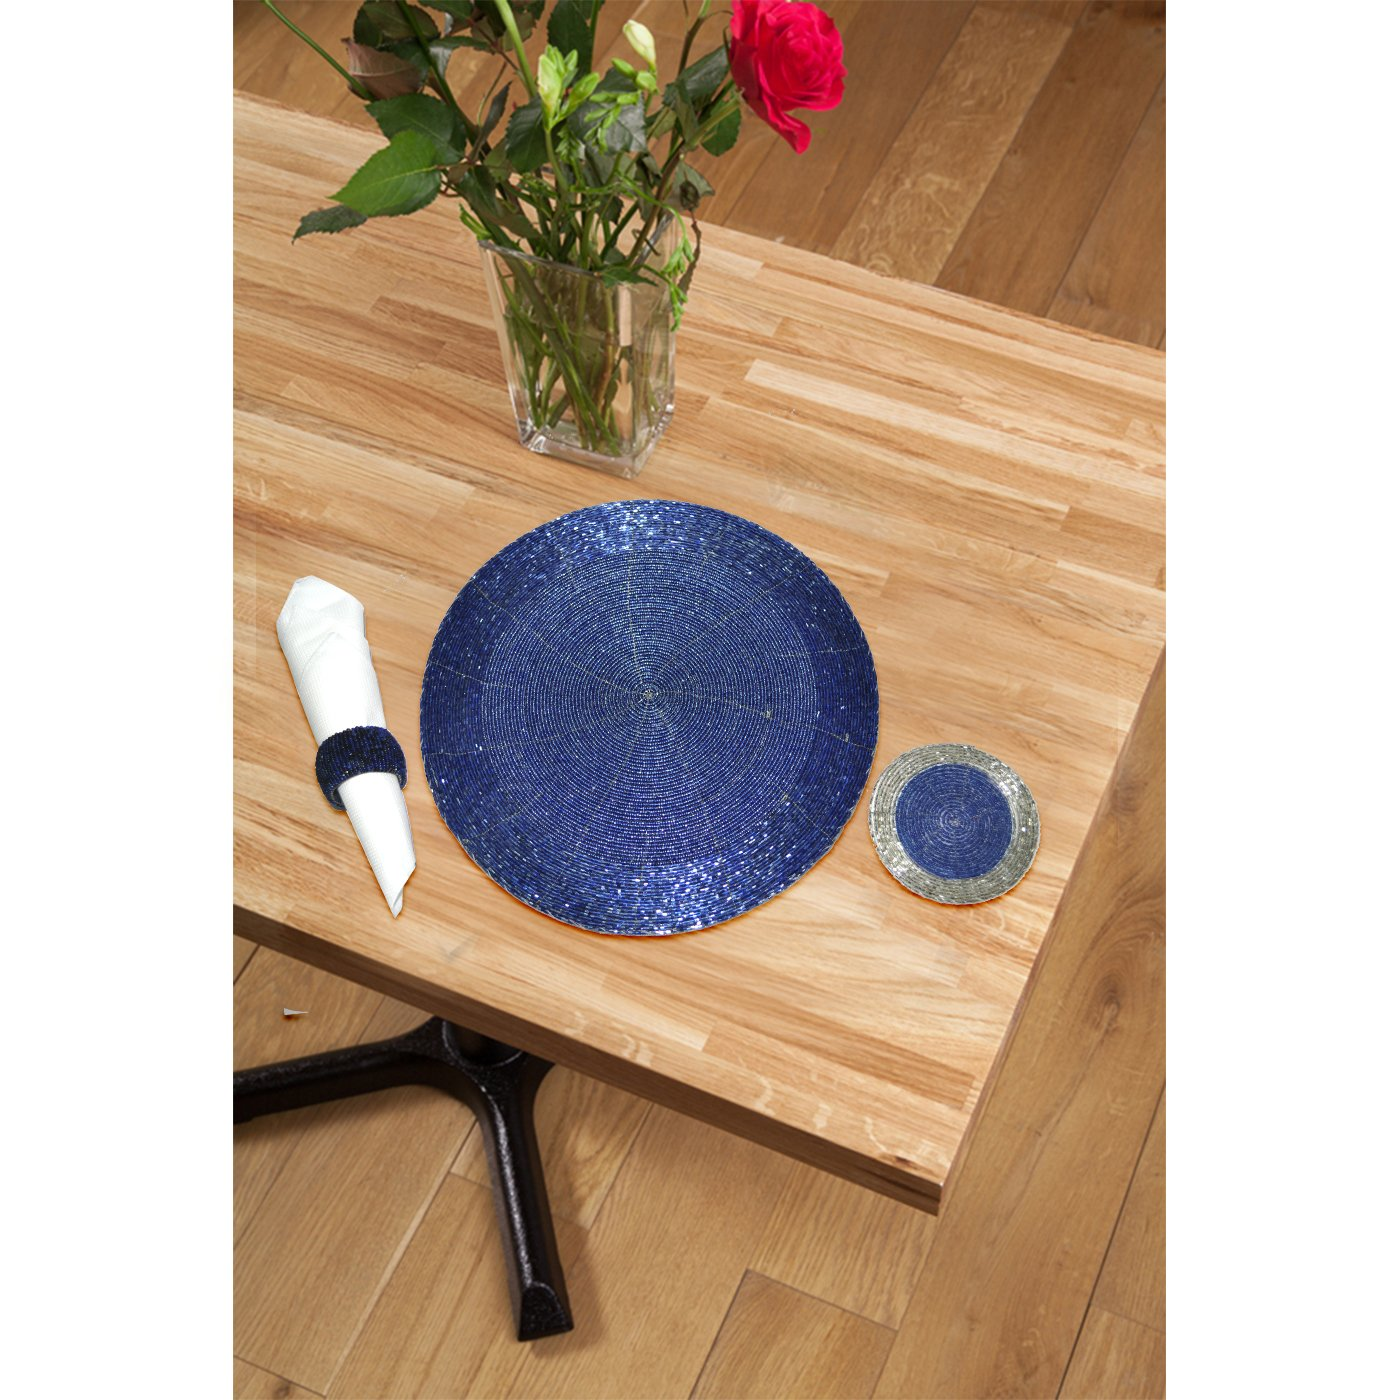 DakshCraft 4 Beaded Round Ethnic Placemat/Tablemat(Dia - 12'') with 4 tea cup coaster(Dia - 4'') and 4 napkin ring(Dia -1.5'') for Christmas Gift, Decorative Item, Gifts Purpose, dining accessories by DakshCraft (Image #2)